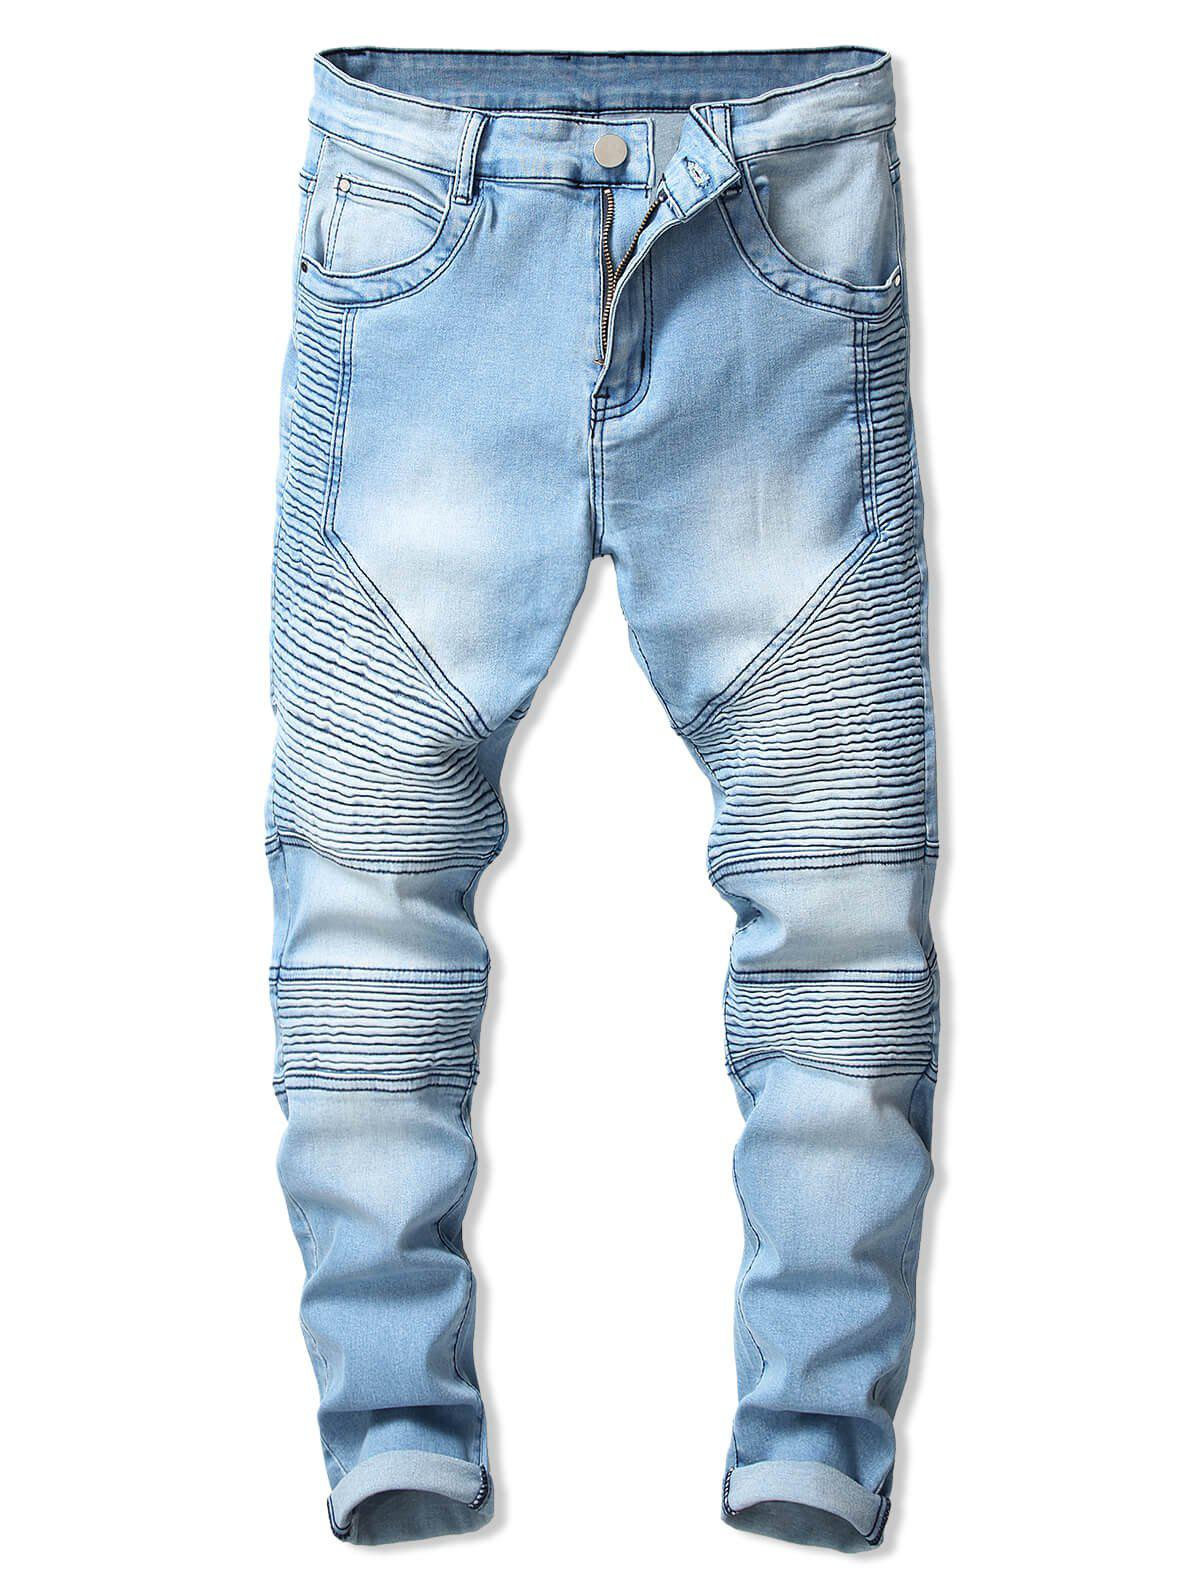 Shop Drape Panel Design Zipper Fly Jeans